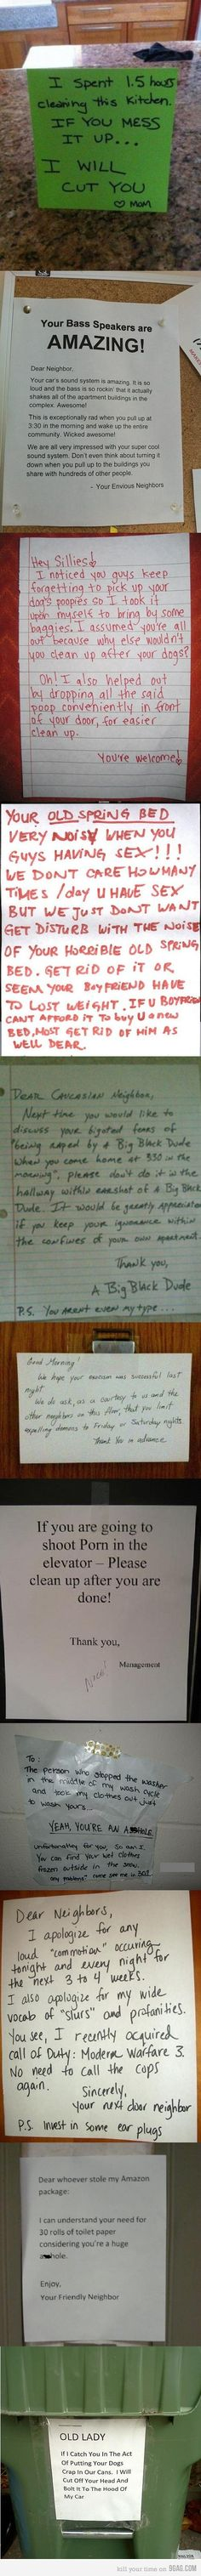 """Some of the best signs ever. """"Ps your not even my type"""" is awesome"""